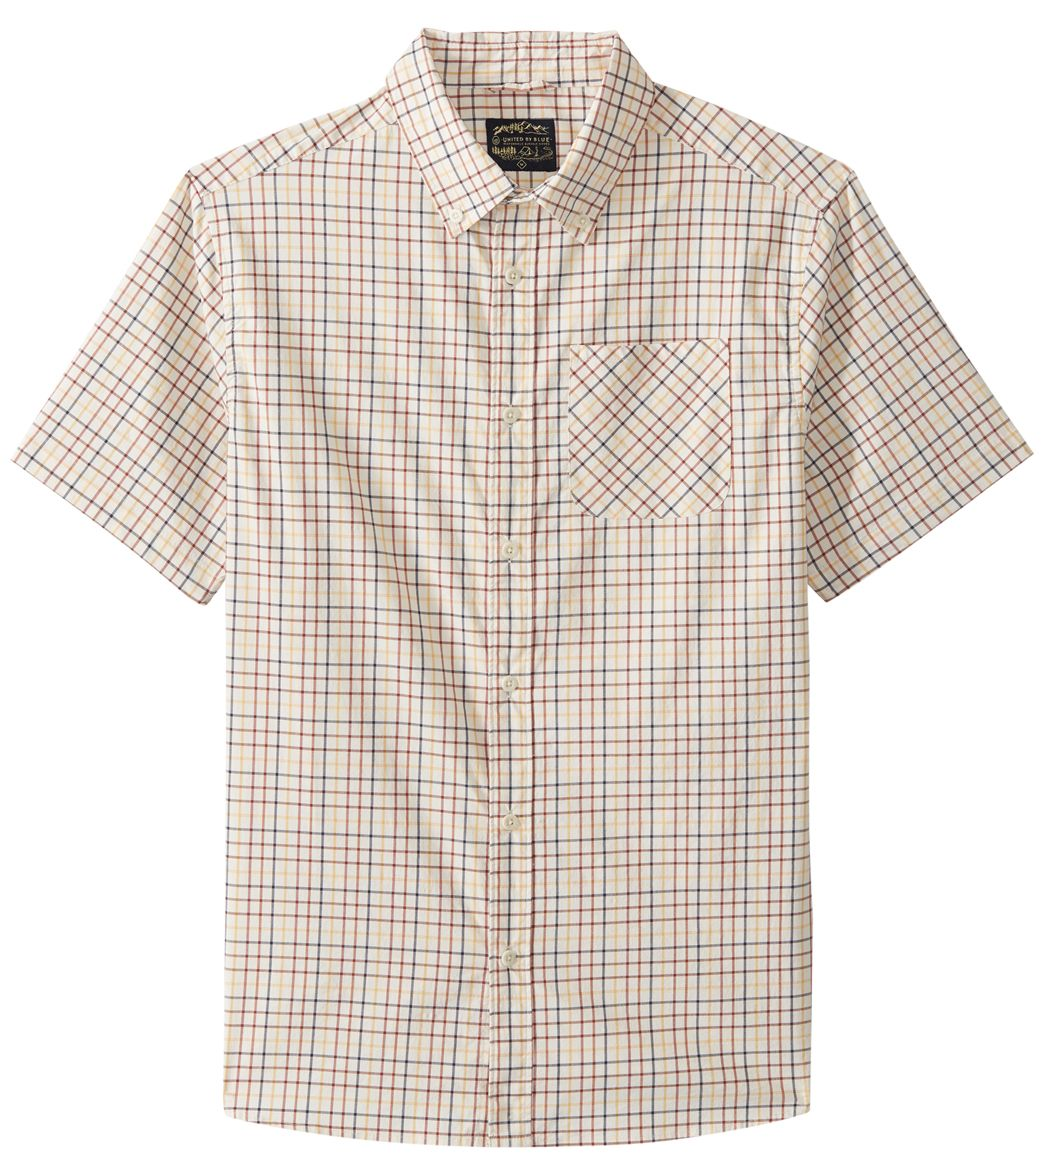 726618f62f5 United By Blue Men's Clydebank Plaid Button Down Shirt